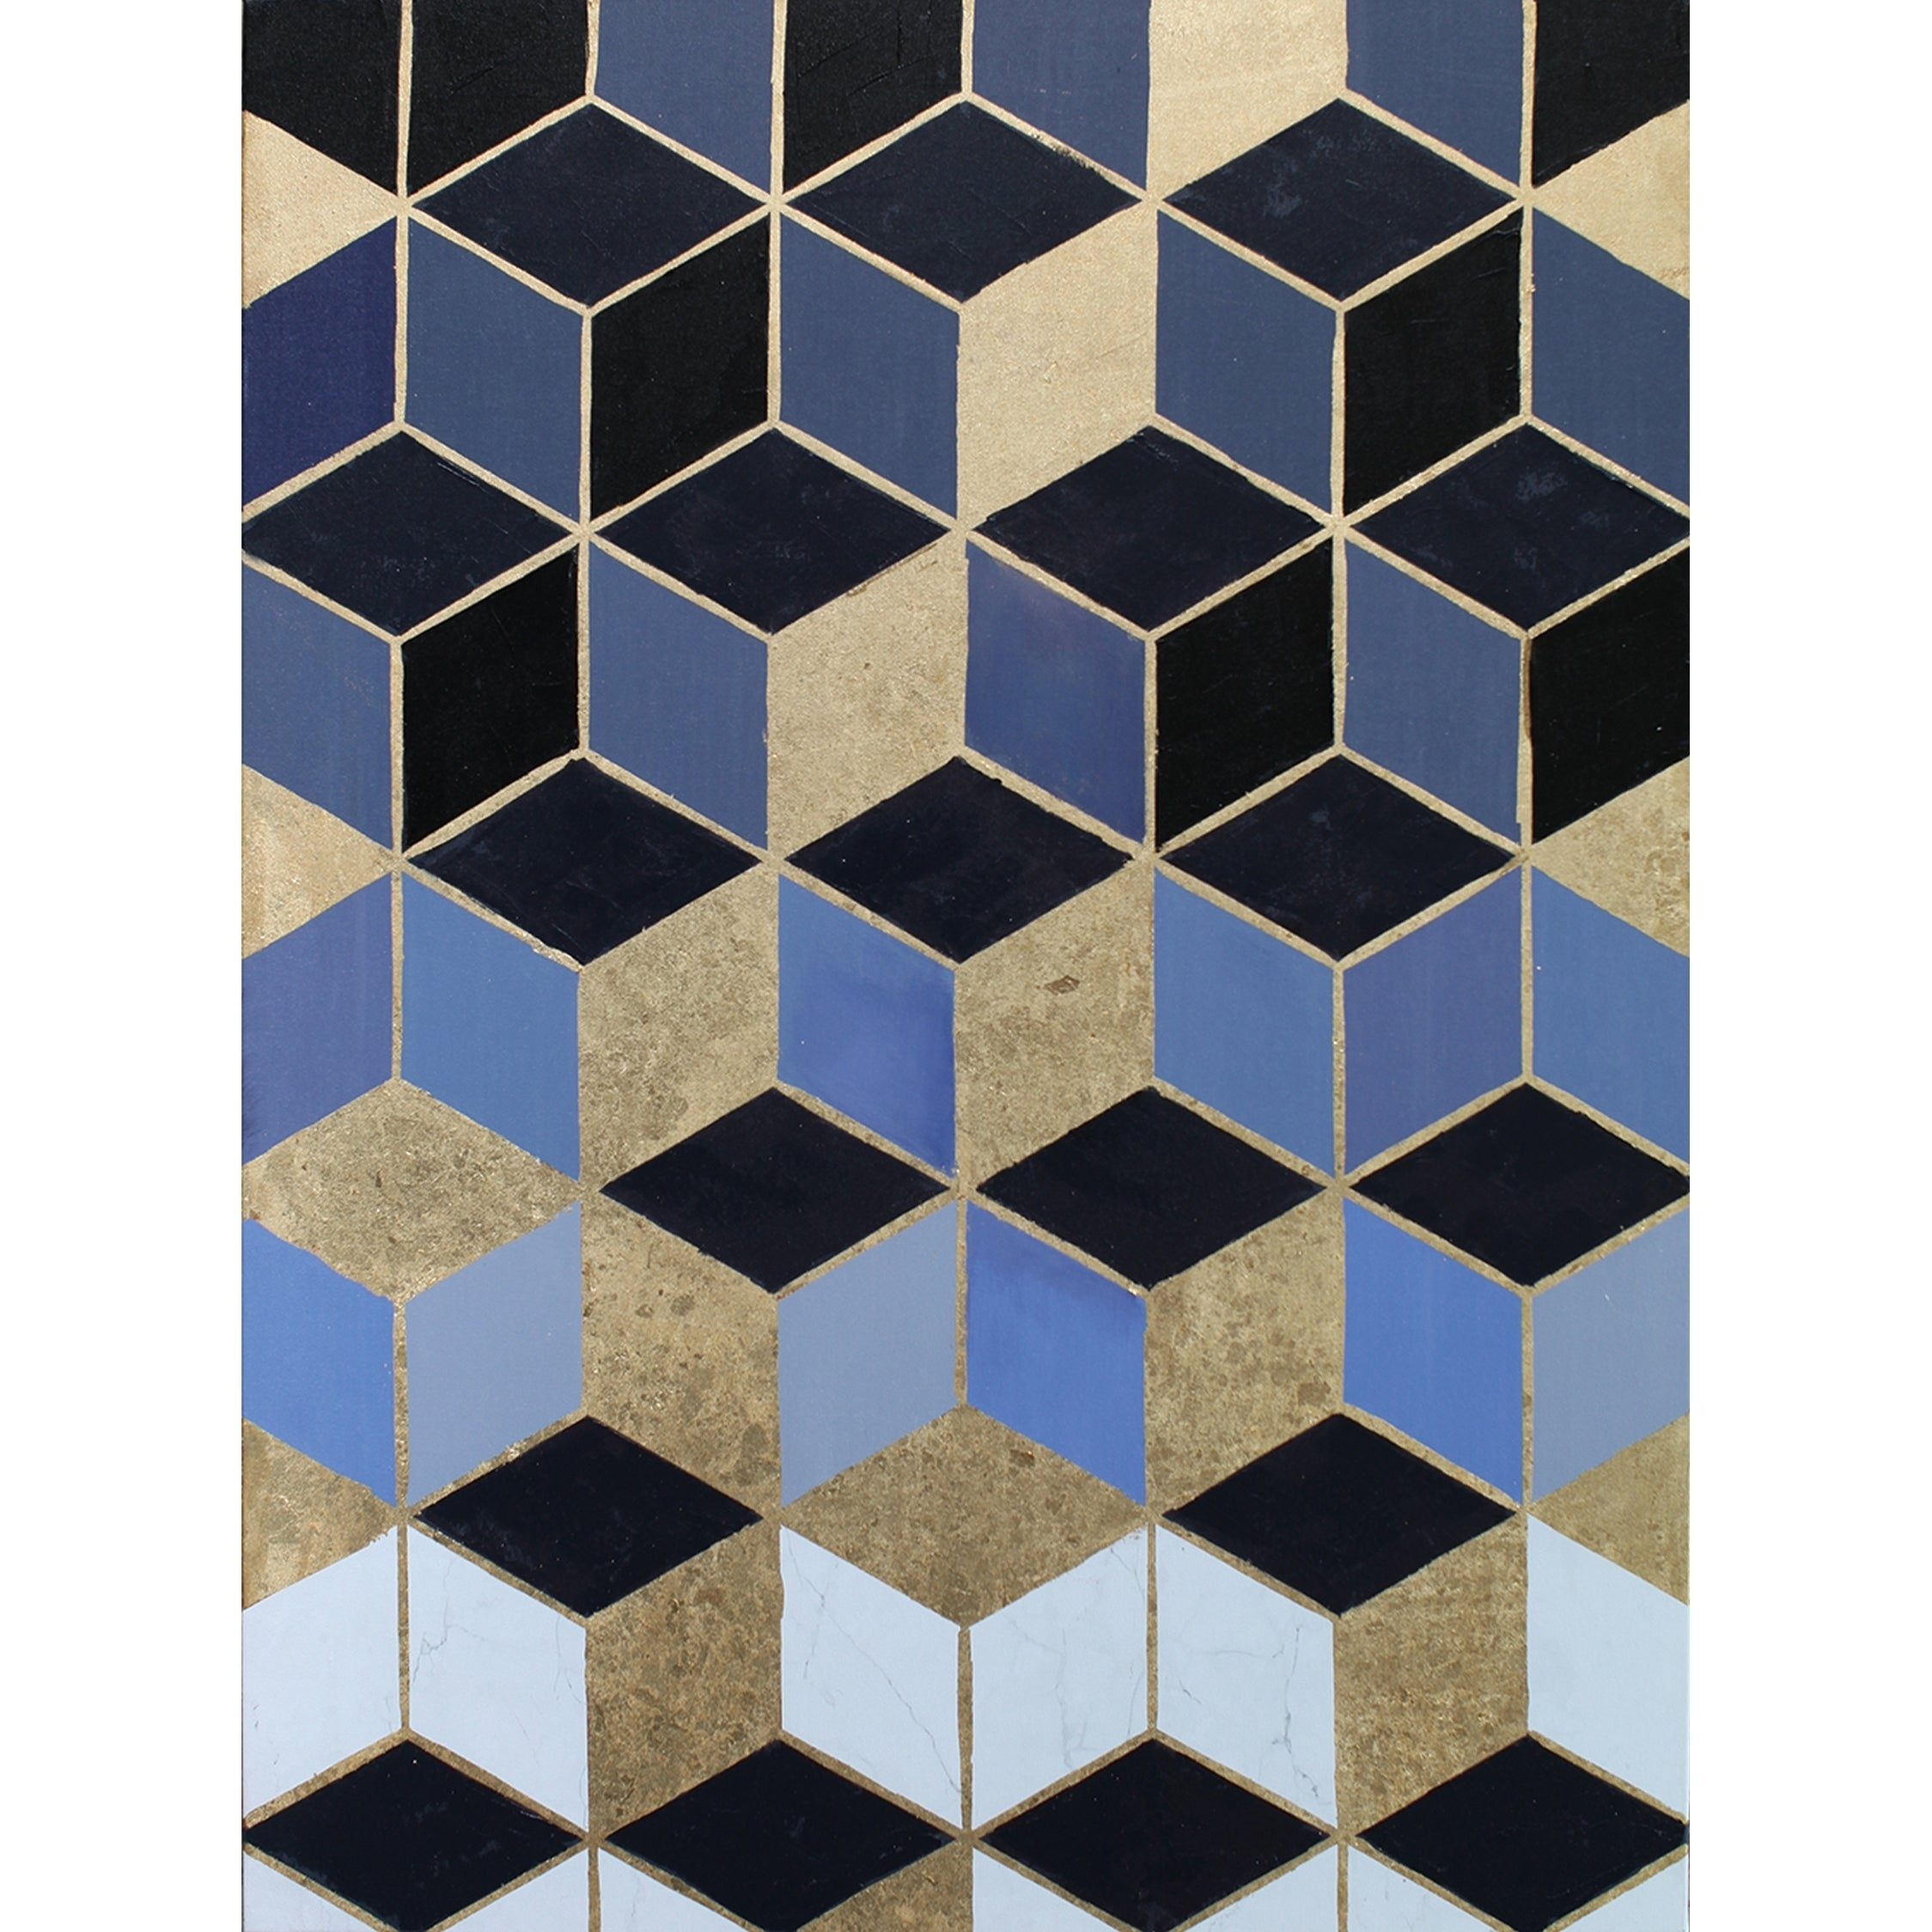 Contemporary Modern Geometric Canvas Wall Decor intended for Contemporary Geometric Wall Decor (Image 10 of 30)